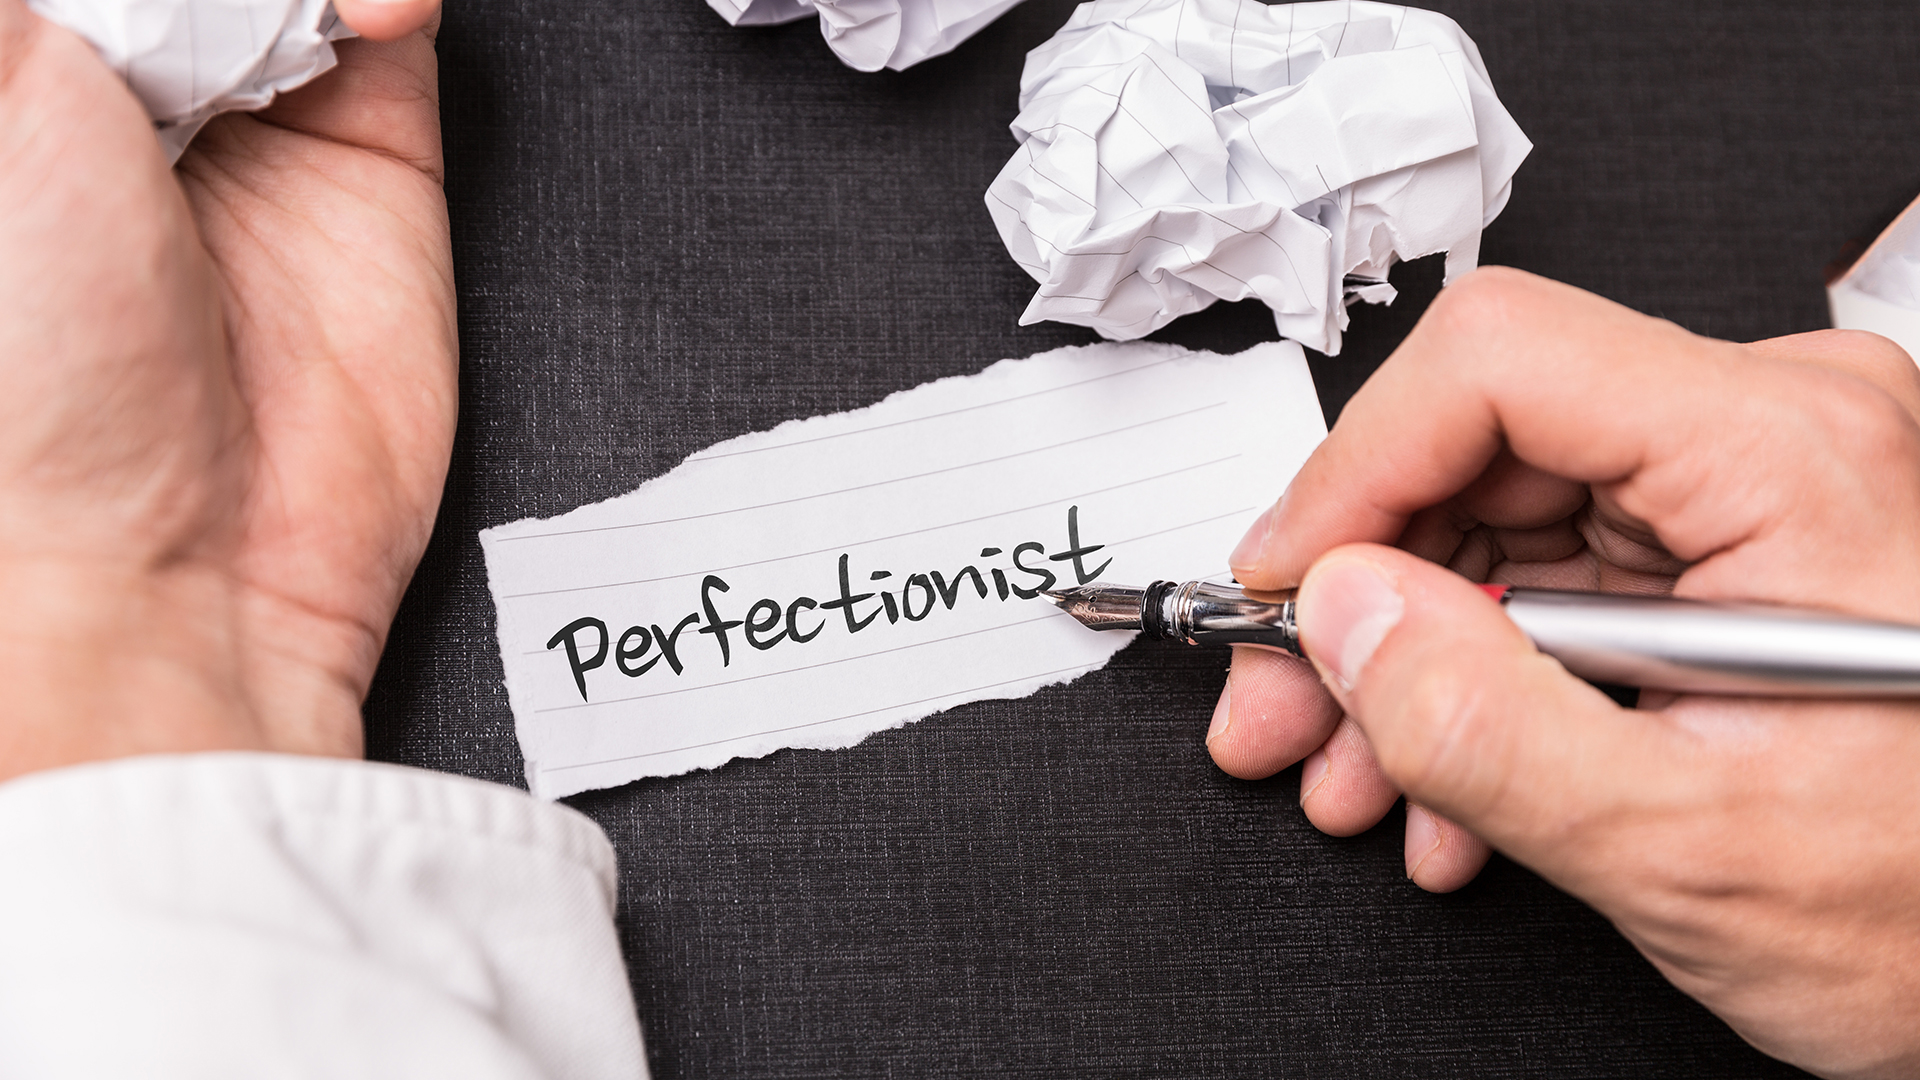 WellbeingHub perfectionism